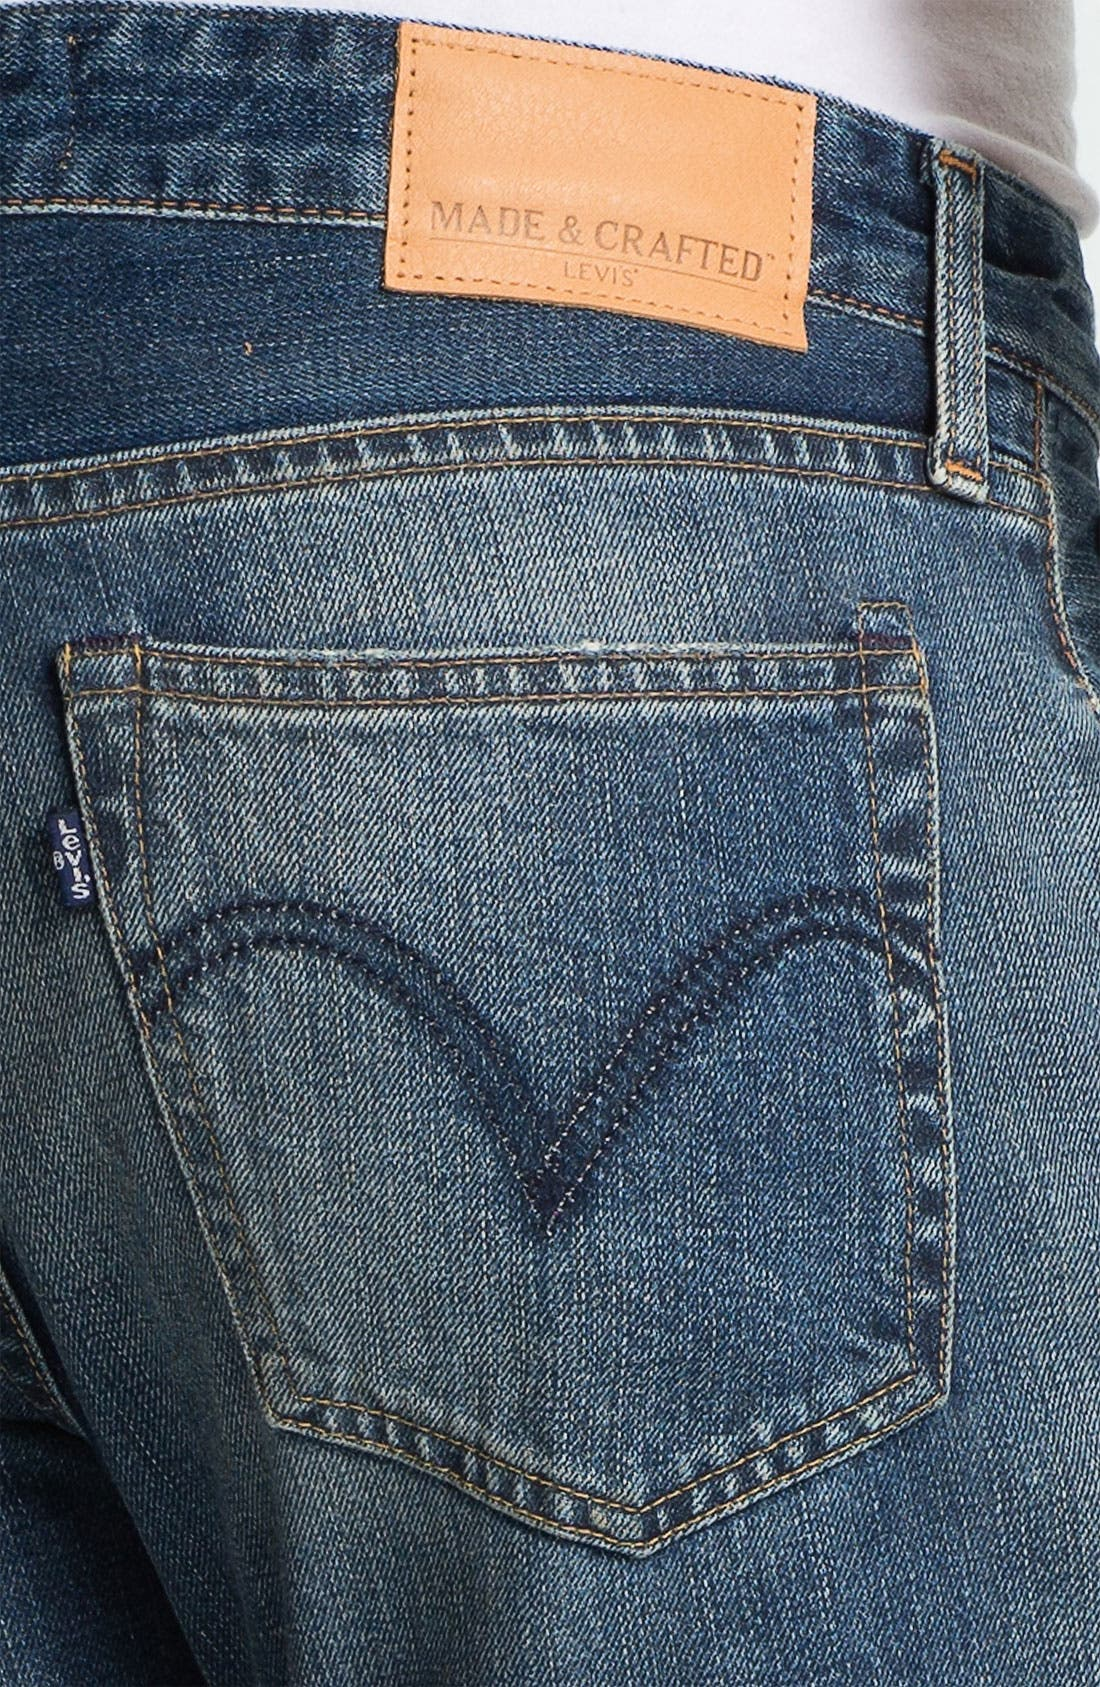 Alternate Image 4  - Levi's® Made & Crafted™ 'Ruler' Straight Leg Jeans (Sparkling)